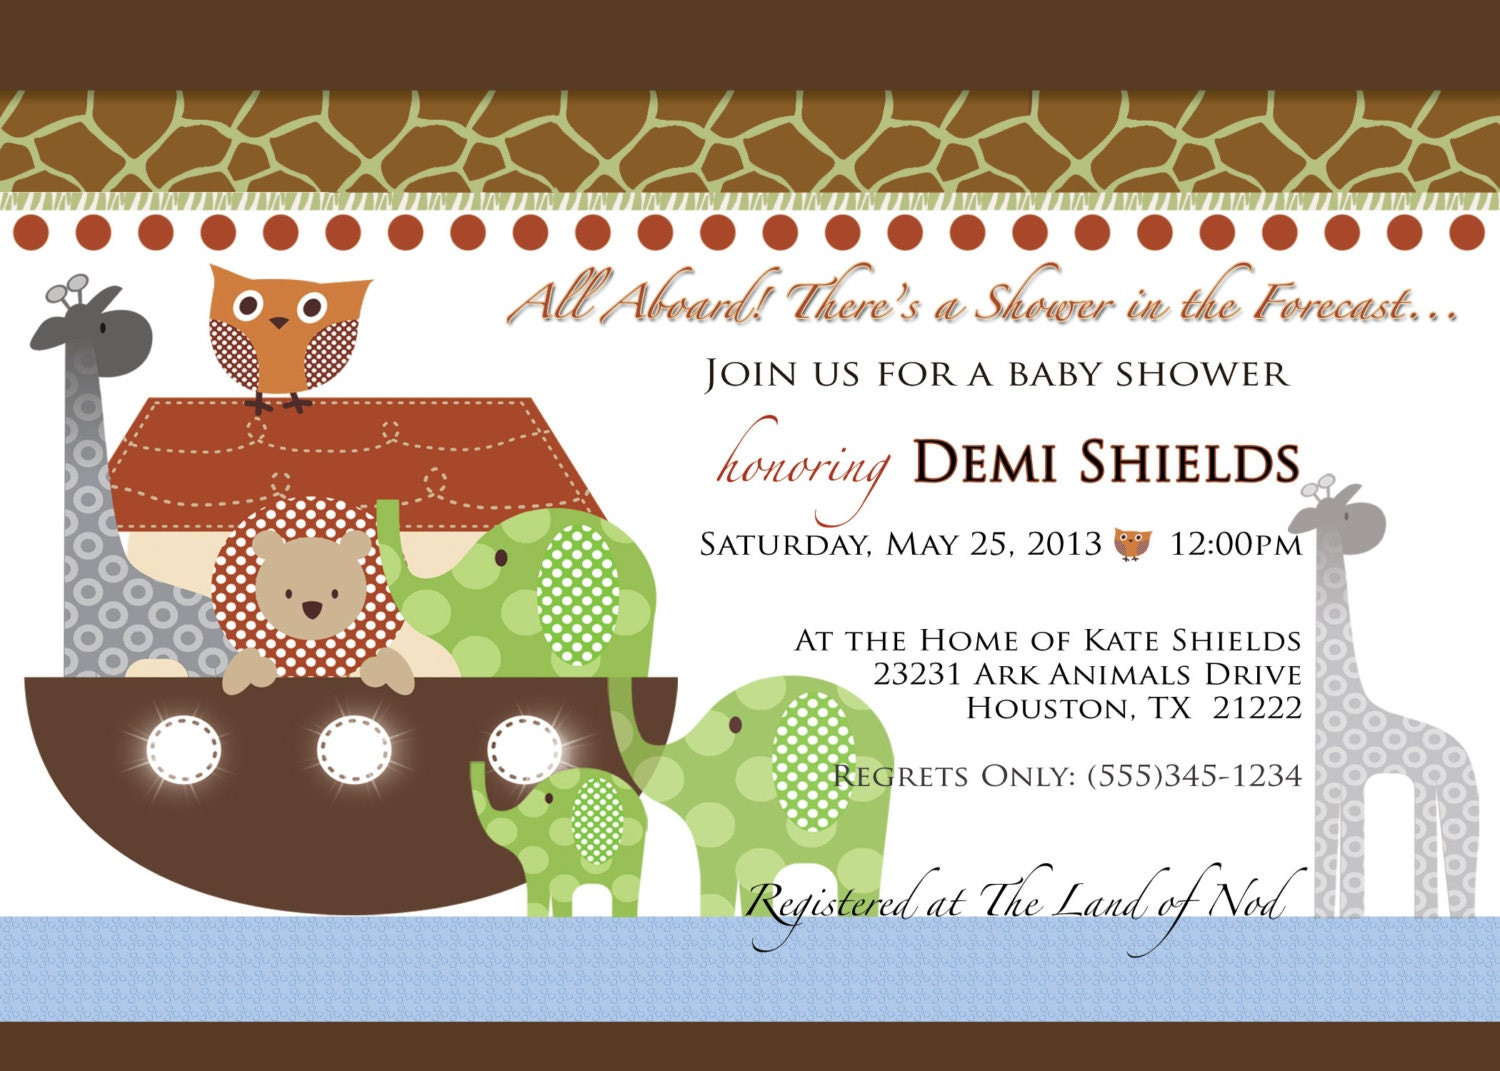 Noah39;s Ark Baby Shower Invitation by TamilynGardnerStudio on Etsy